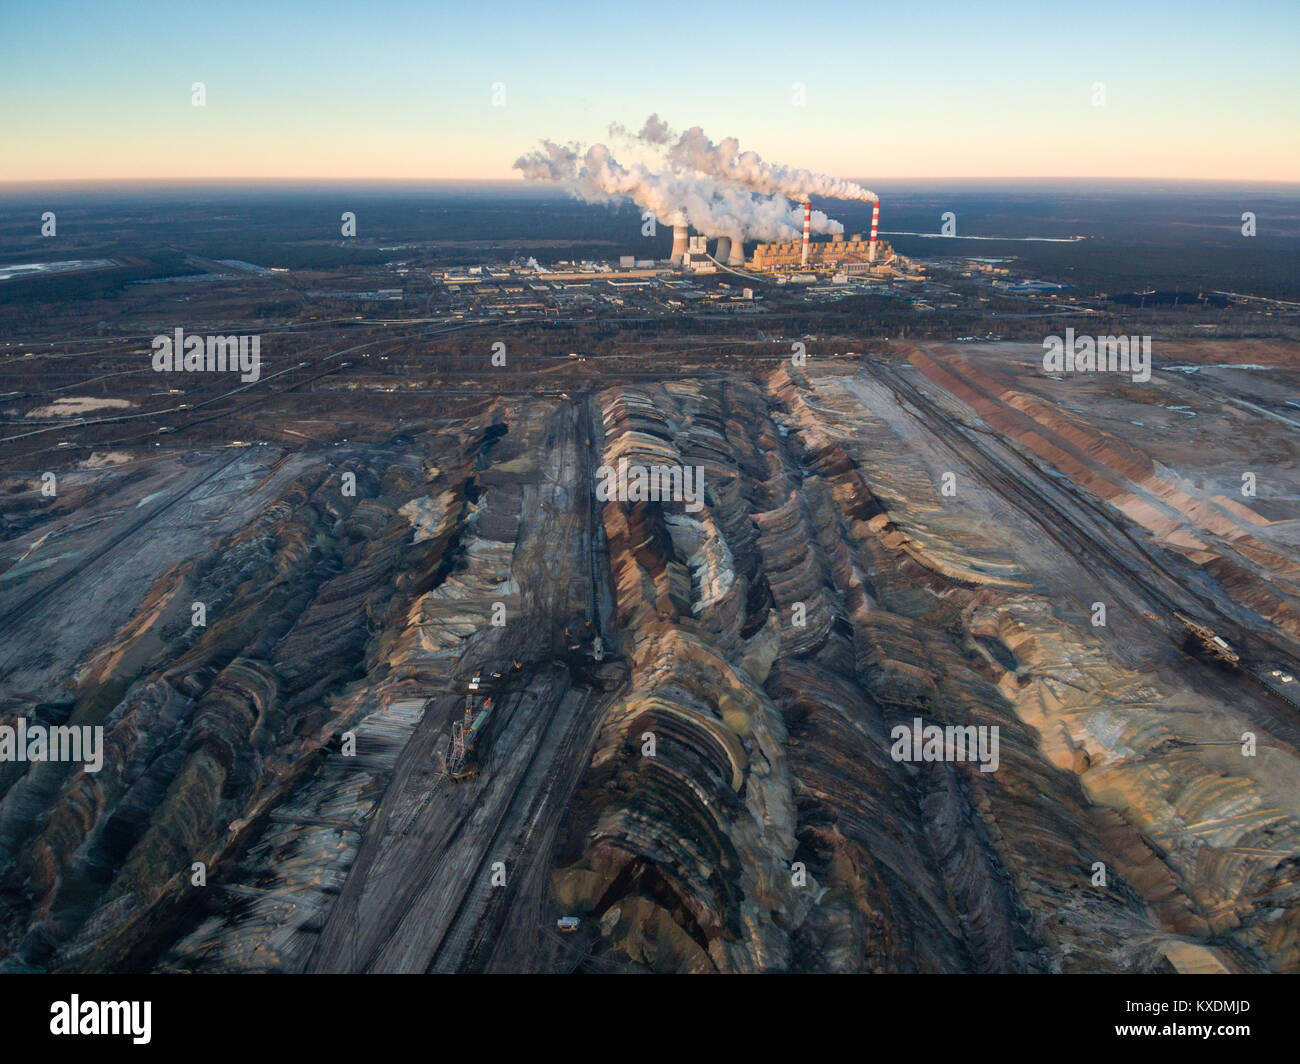 Aerial view of open-cast coal mine Belchatow, Poland - Stock Image